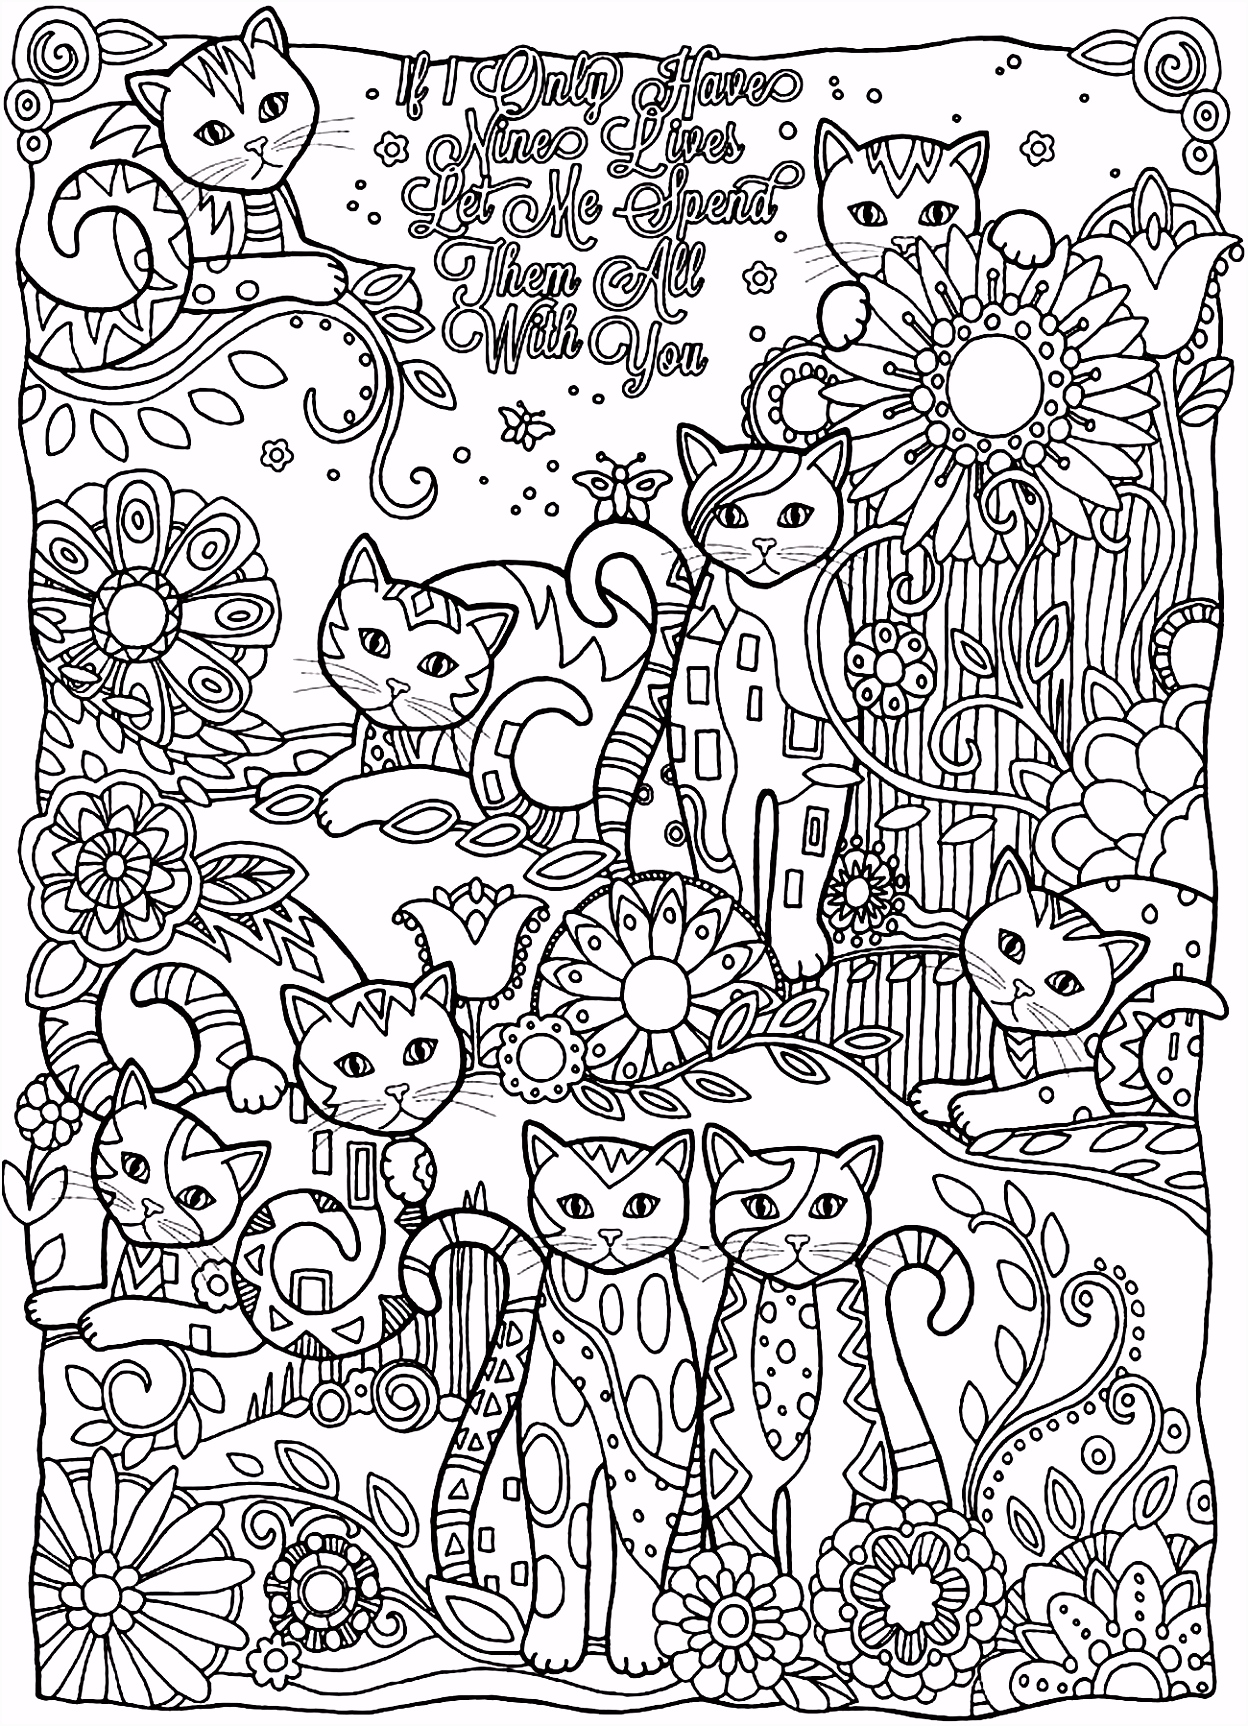 Goosebumps Coloring Pages Goosebumps Coloring Pages Coloring Home